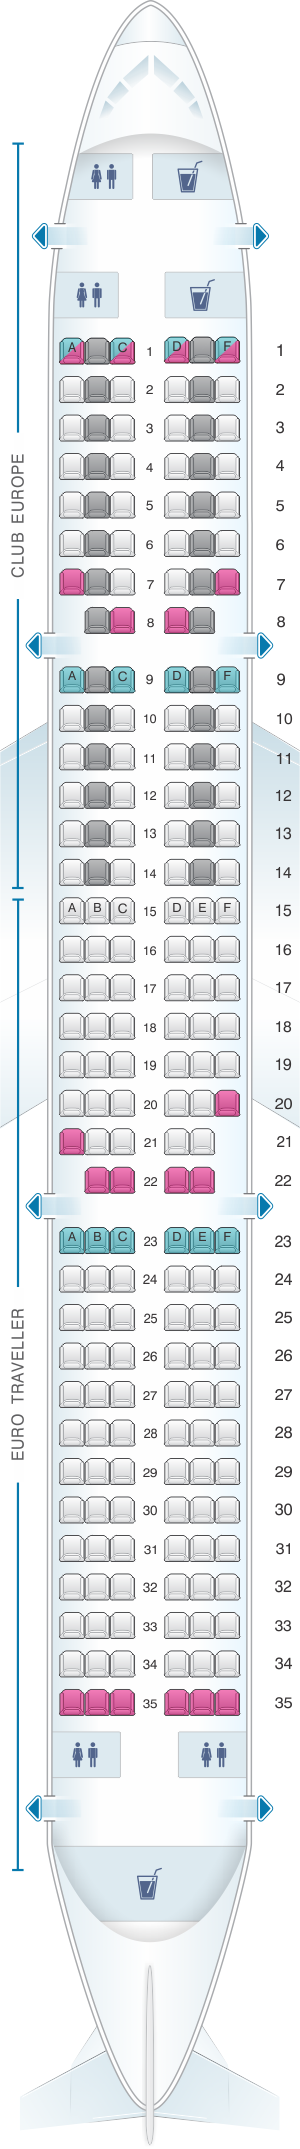 How can you access the Airbus A321 seating chart?